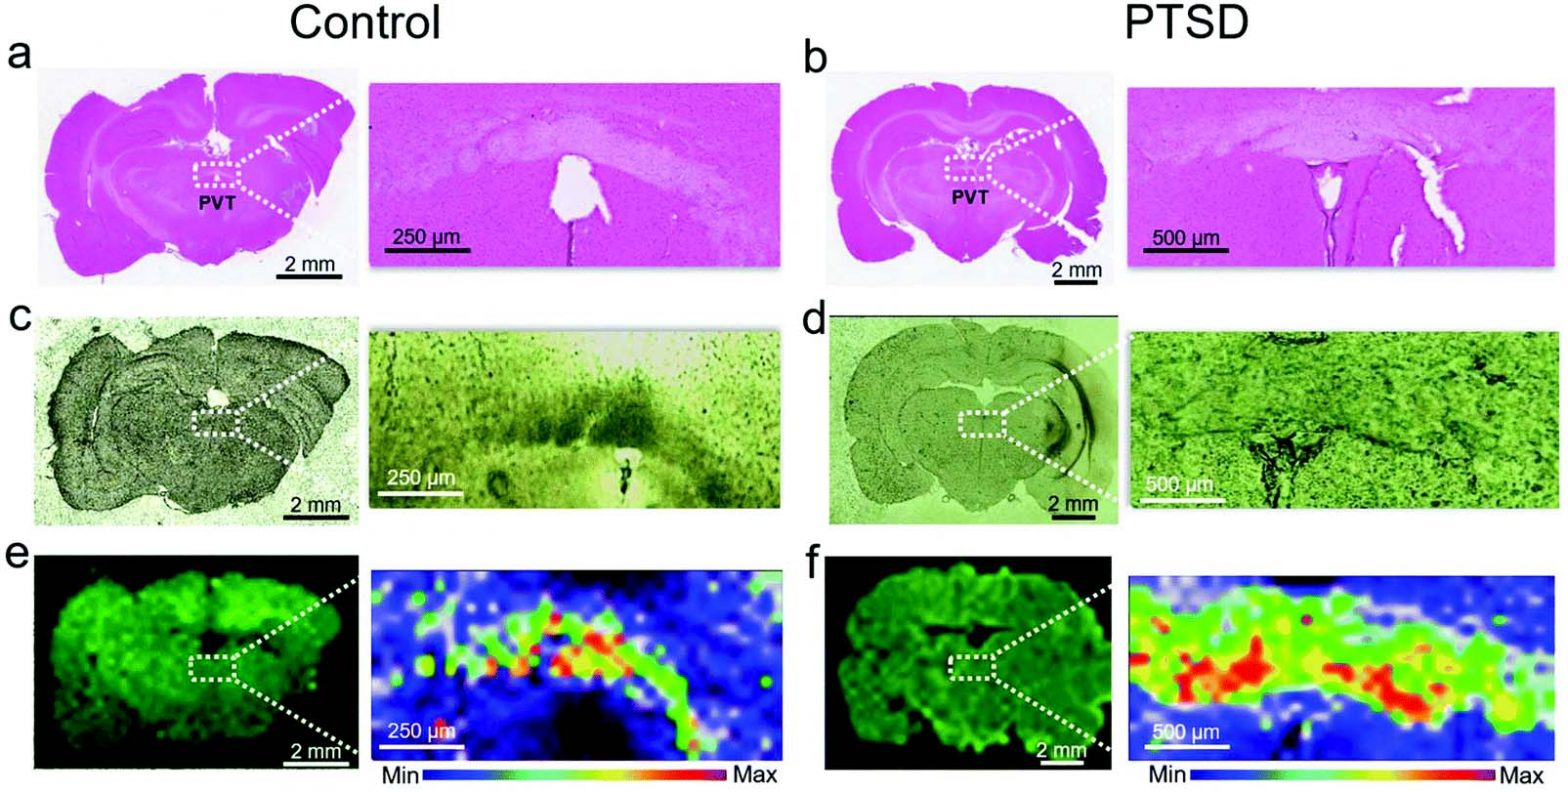 Label-free lipidome study of paraventricular thalamic nucleus (PVT) of rat brain with post-traumatic stress injury by Raman imaging